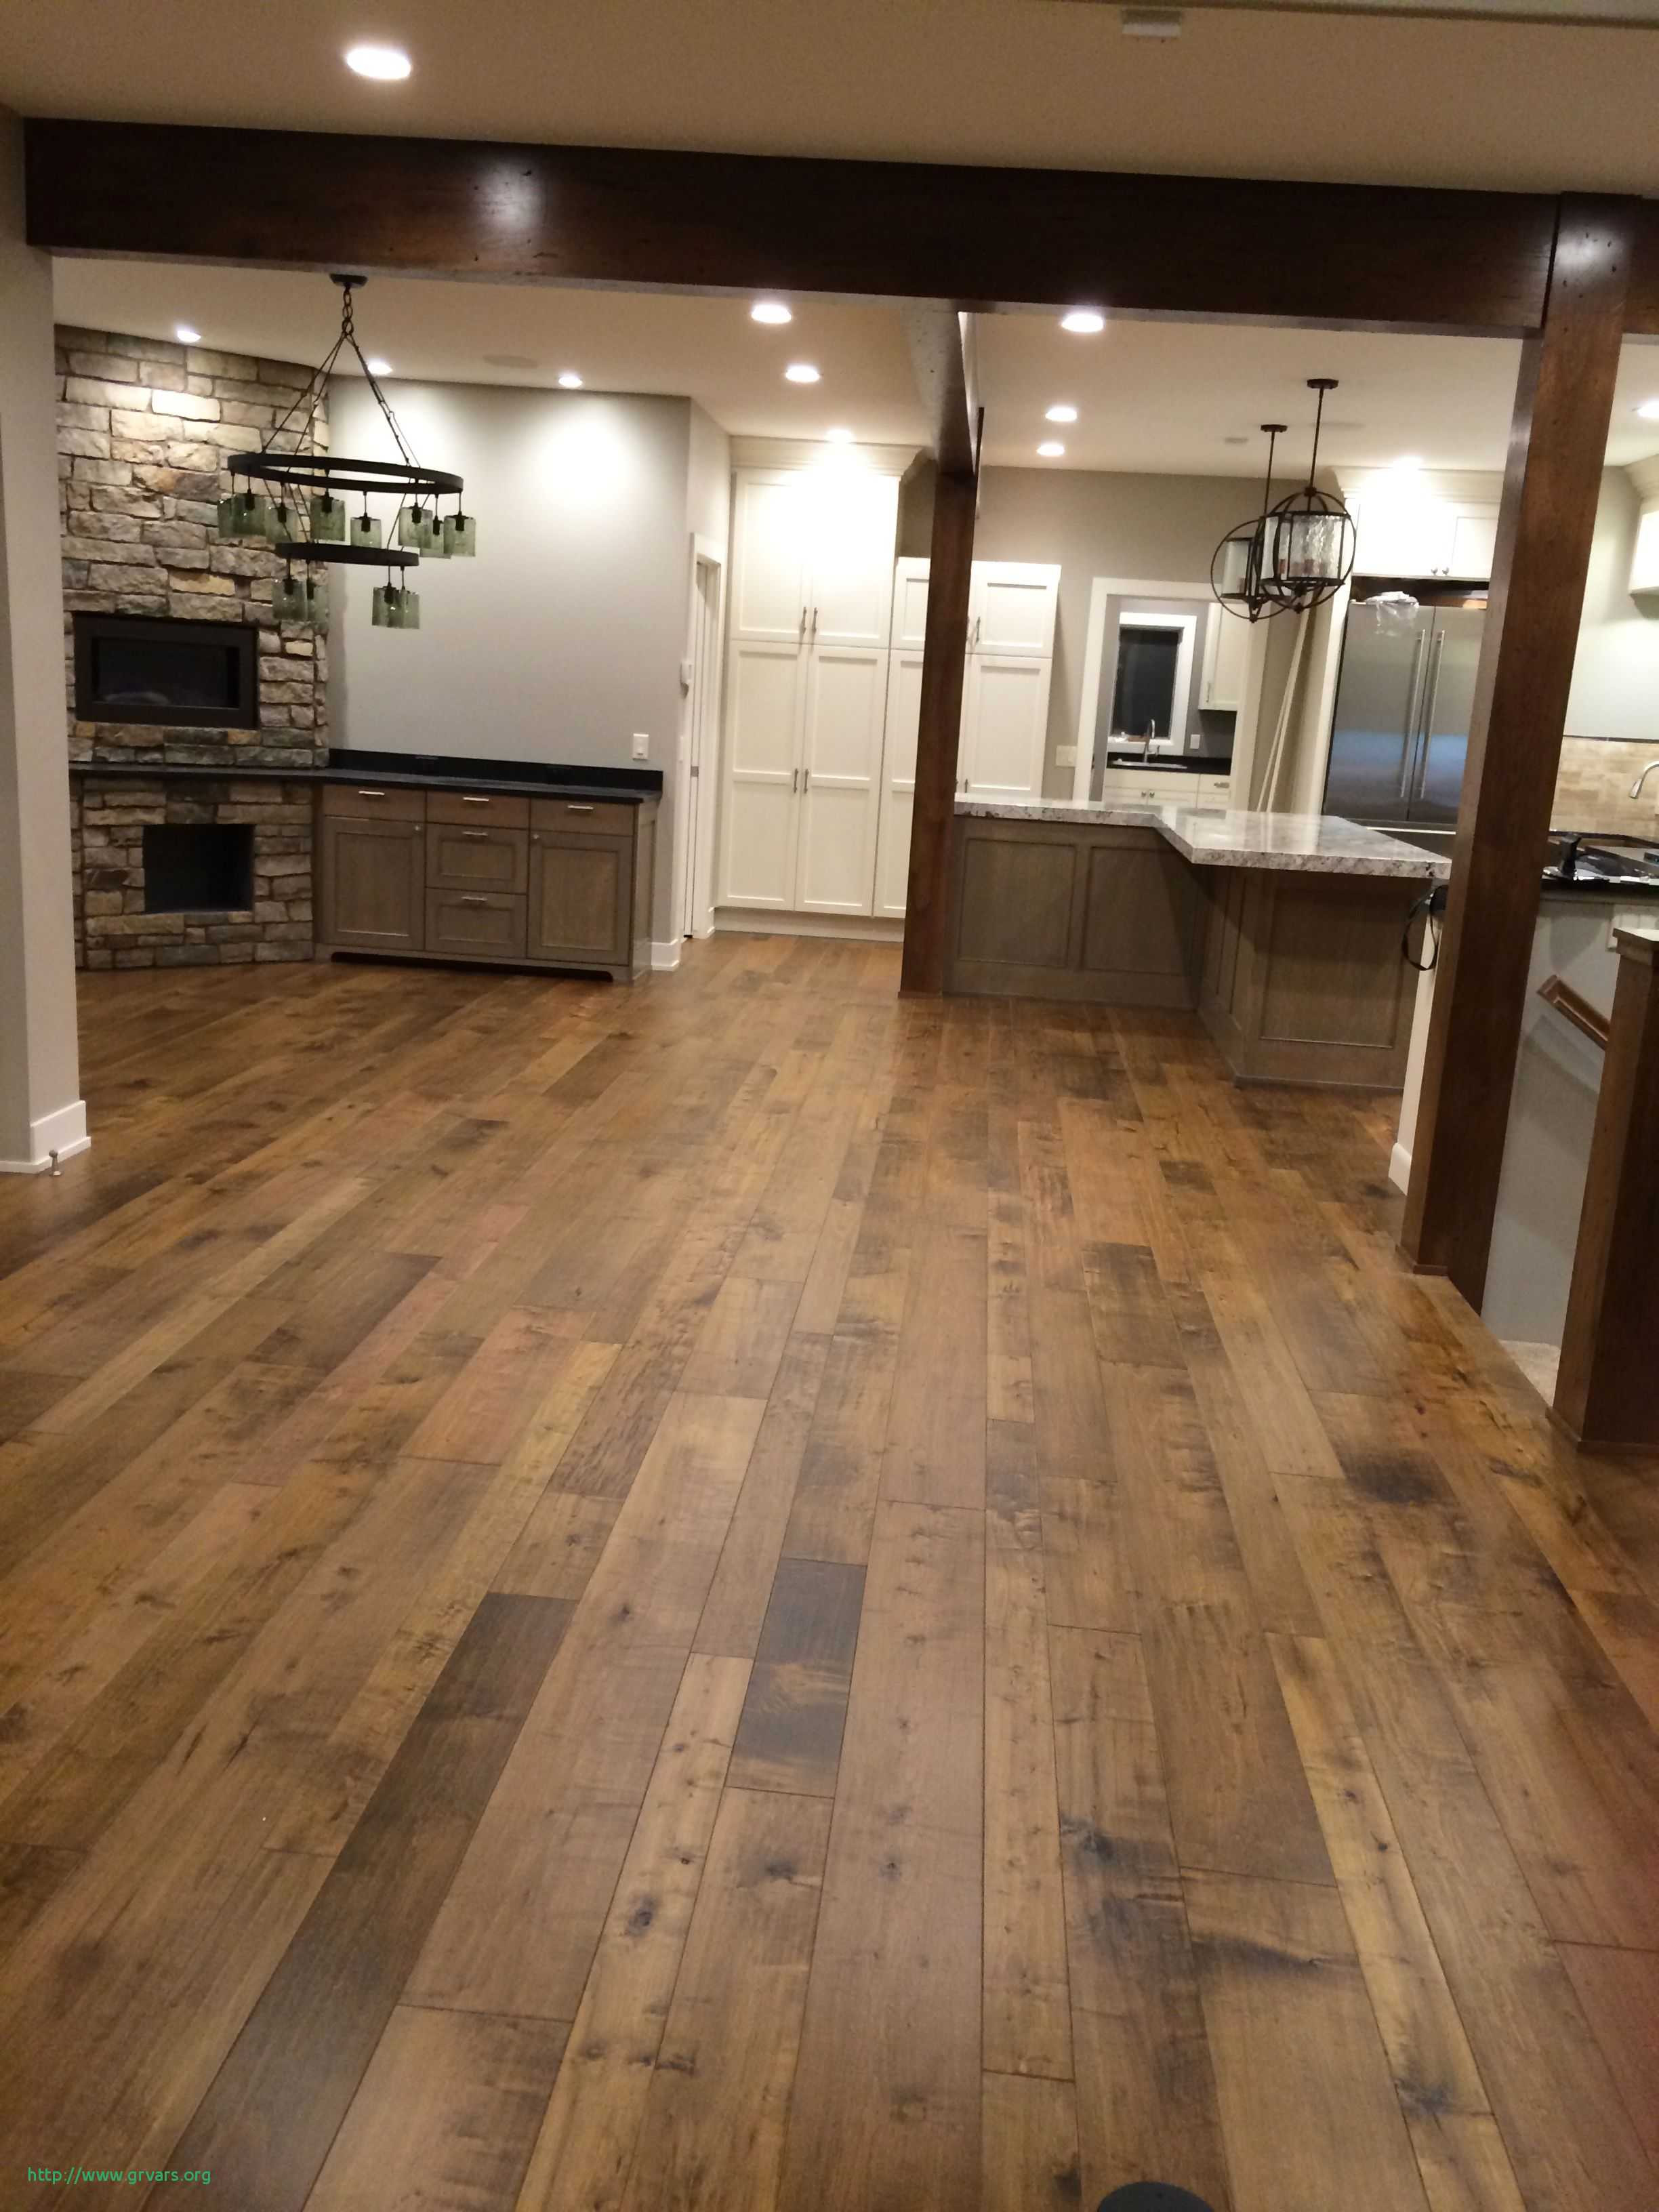 hardwood floor refinishing appleton wi of 21 nouveau how much is laminate flooring installed ideas blog pertaining to how much is laminate flooring installed beau monterey hardwood collection rooms and spaces